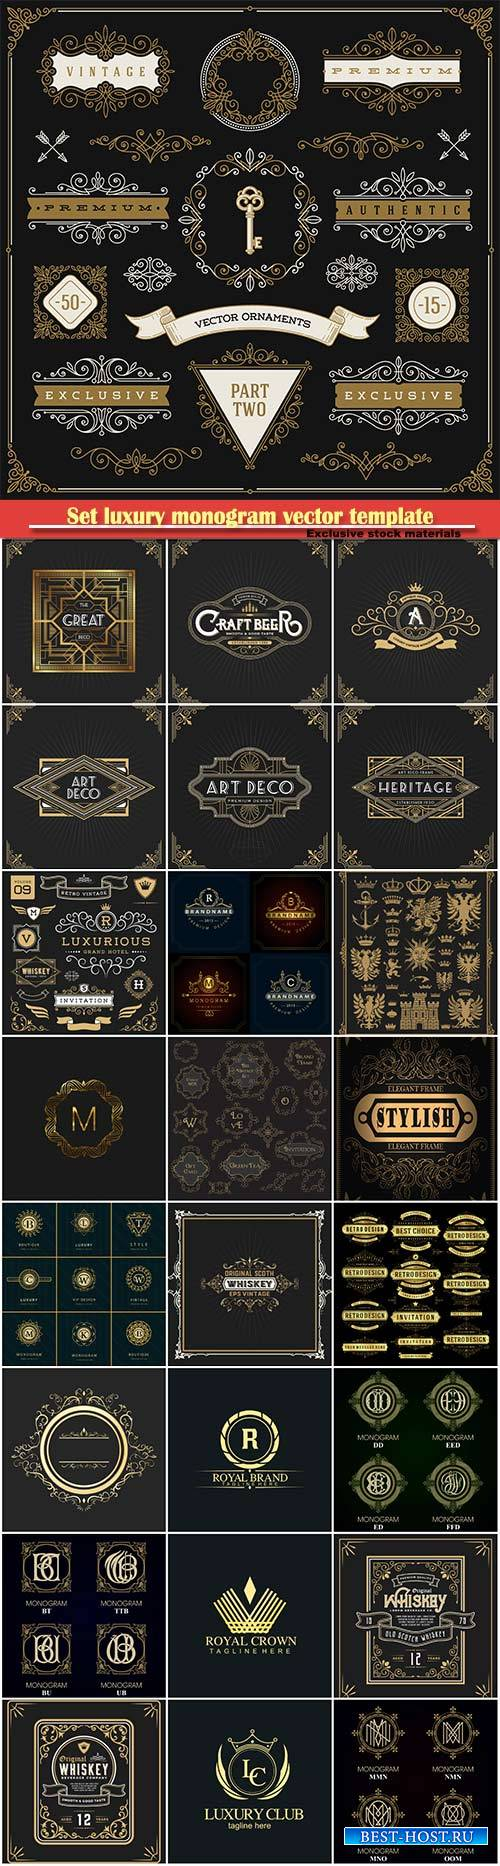 Set luxury monogram vector template, logos, badges, symbols # 15